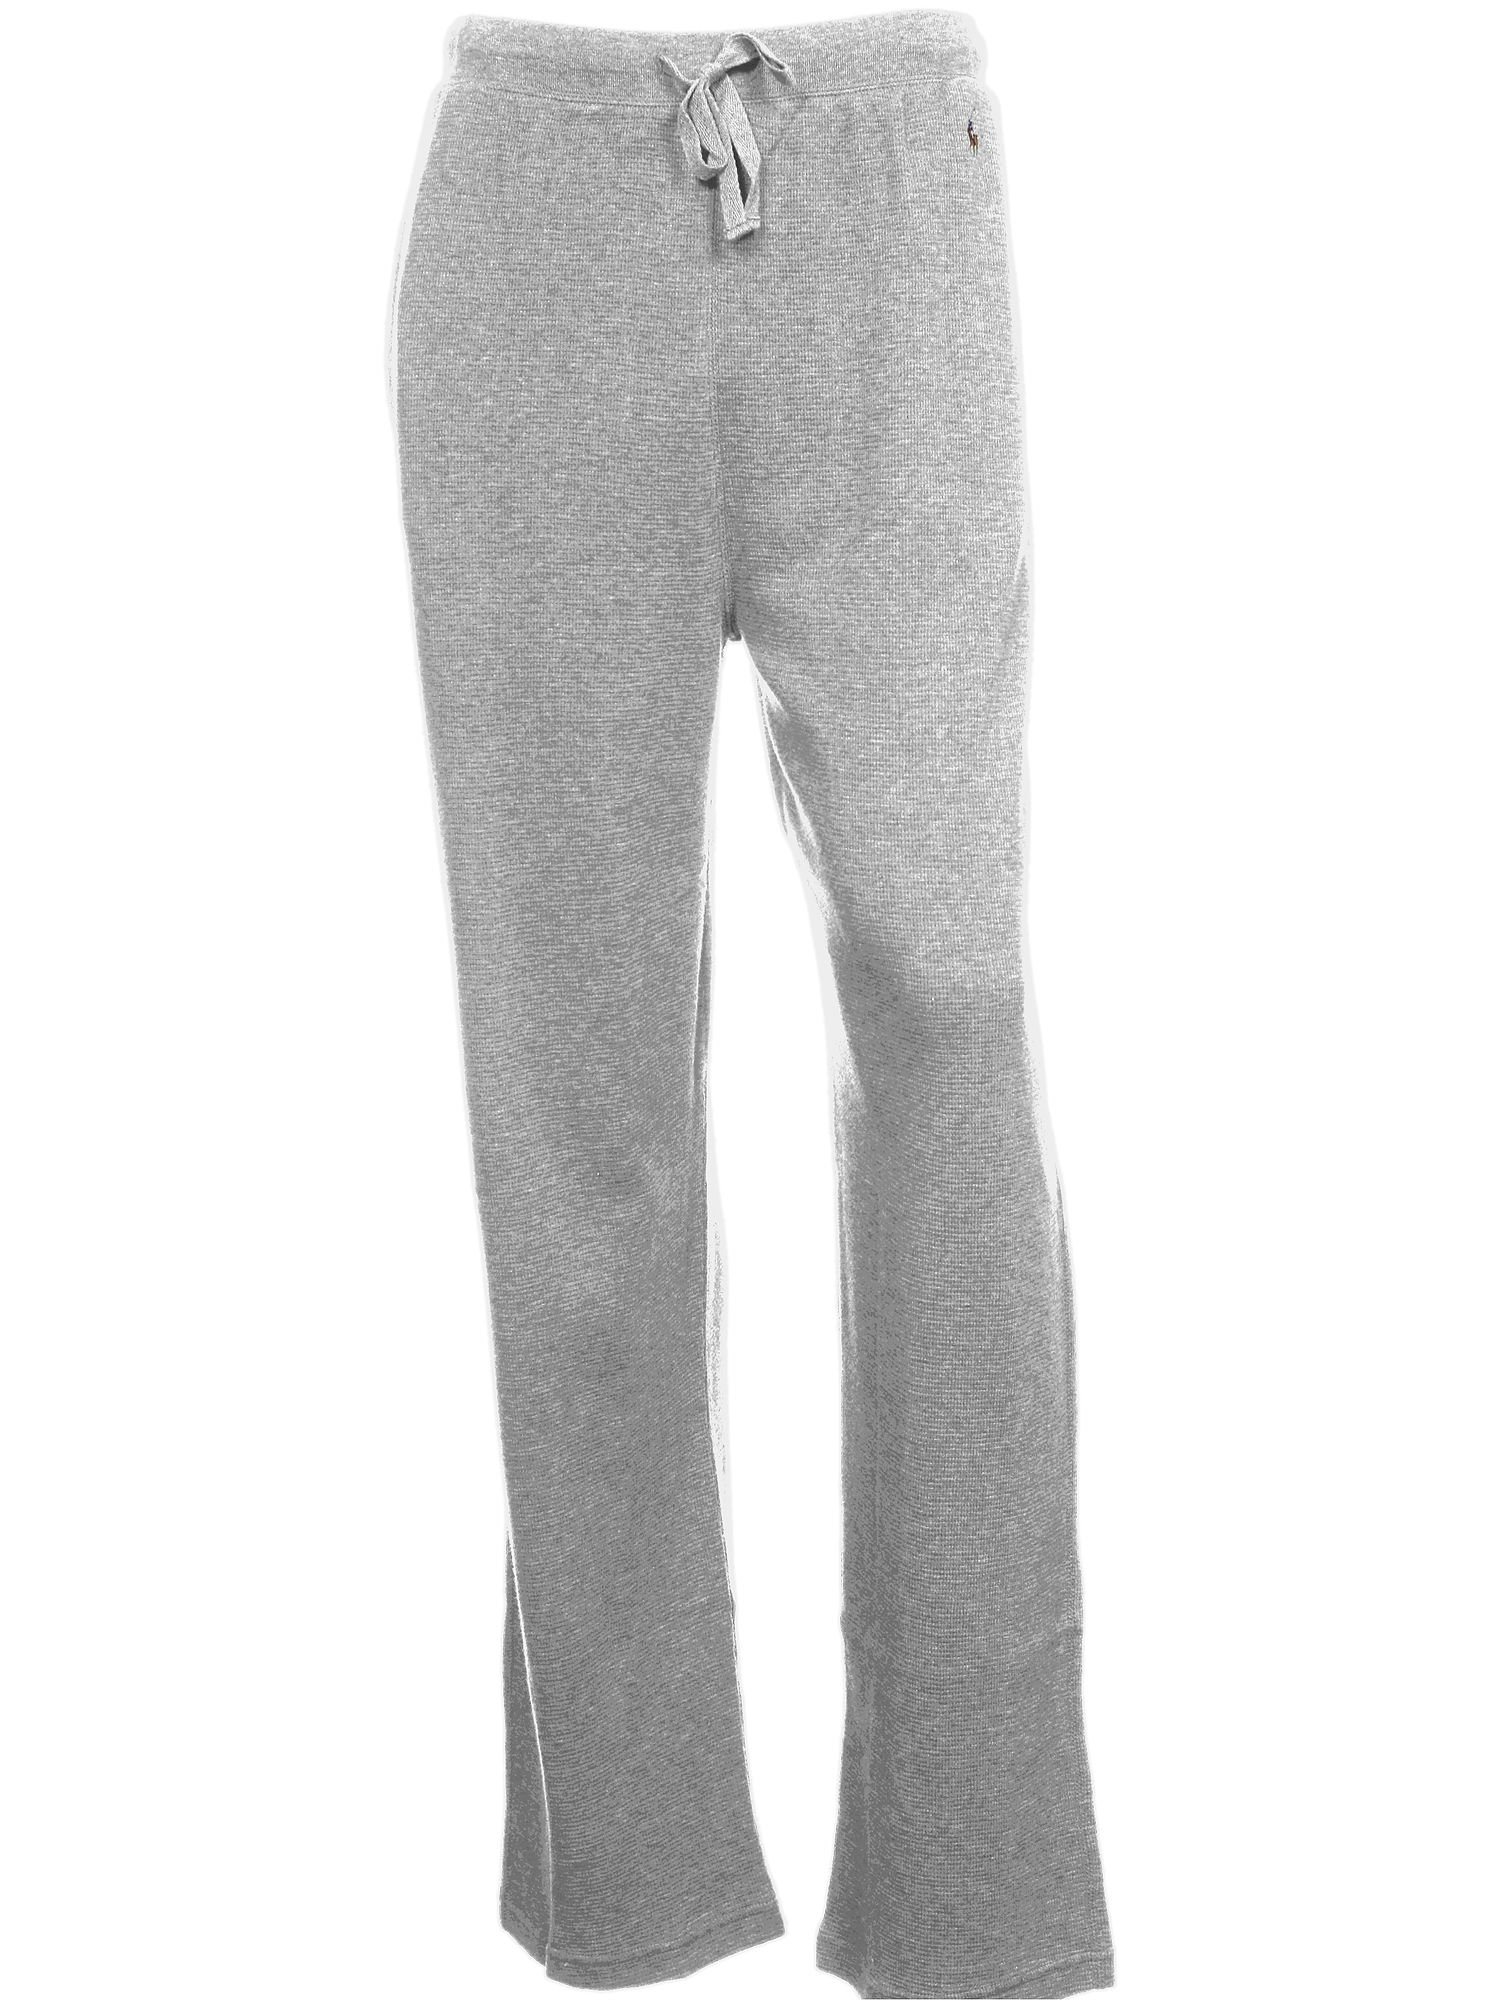 RALPH LAUREN Polo Sleepwear Men's Heather Pajama Pants (Small, Light Gray)